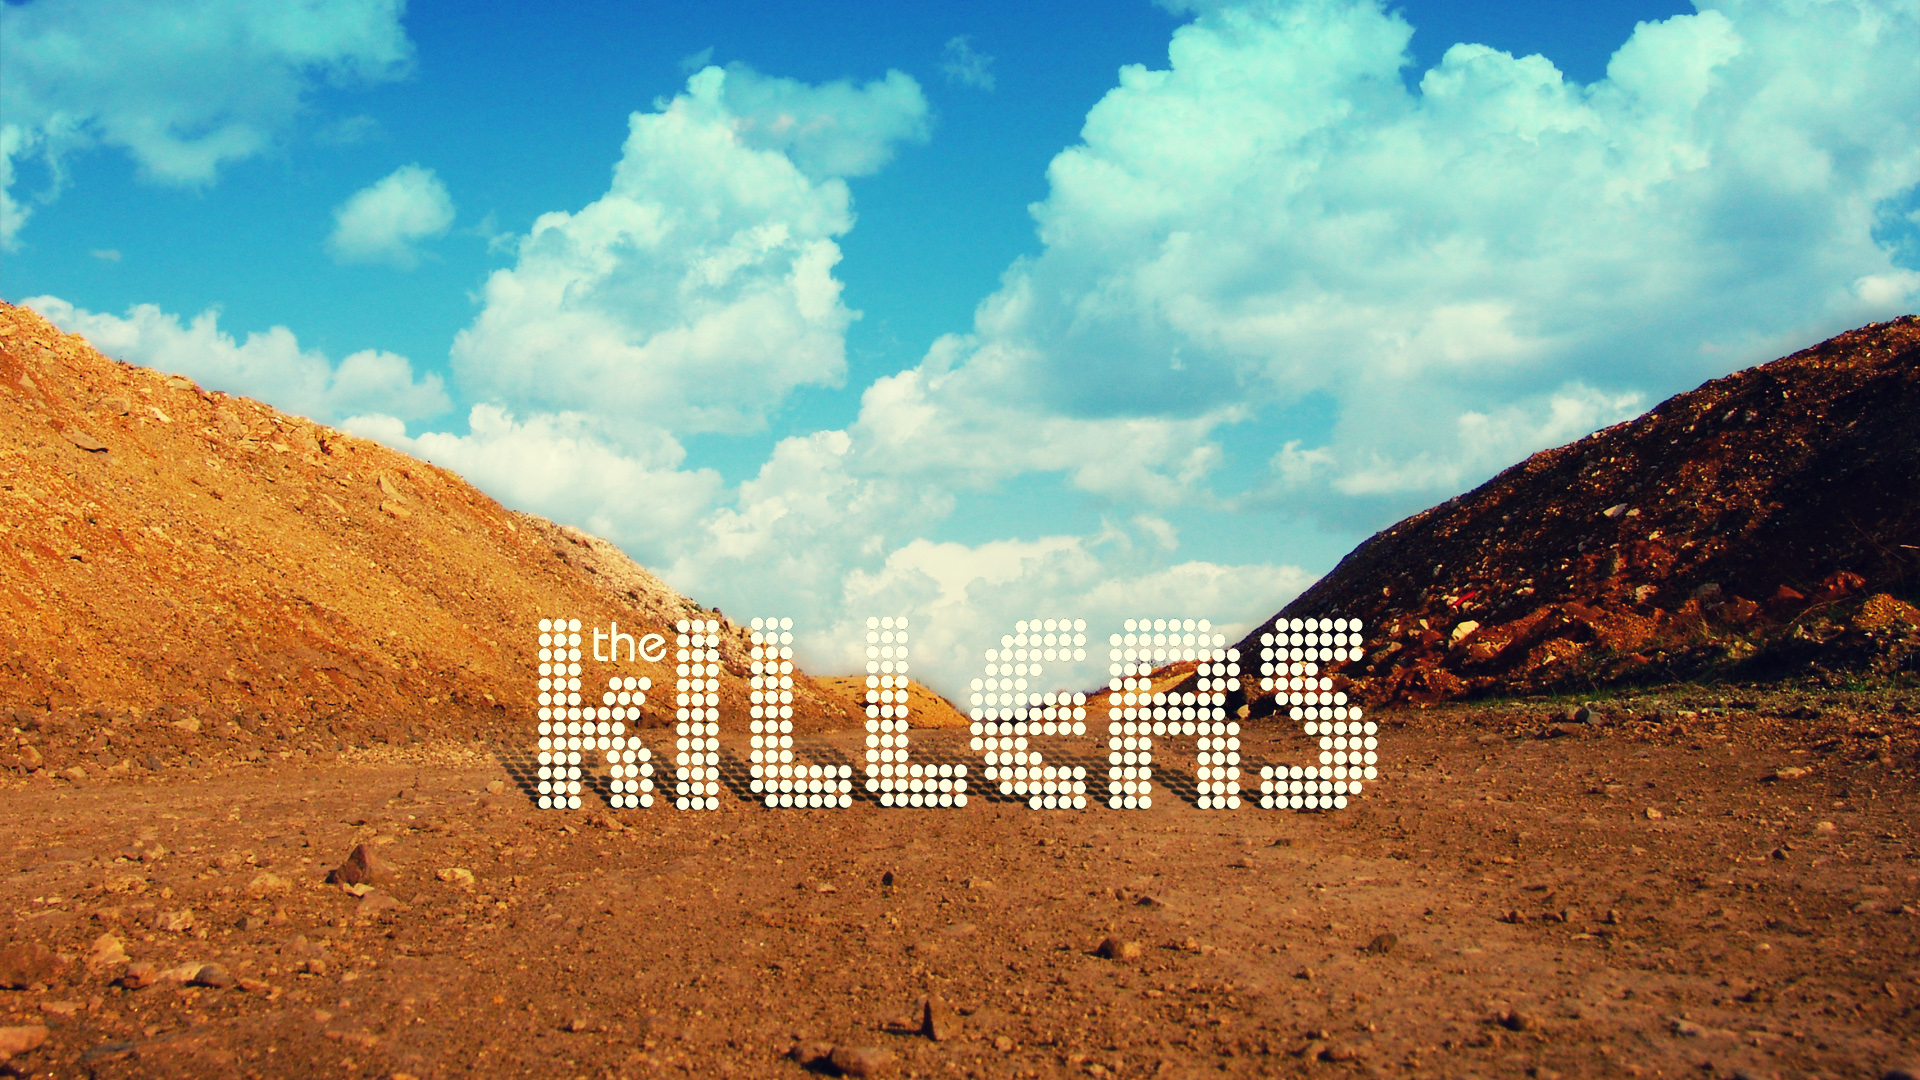 Band Wallpapers Hd 7 The Killers Hd Wallpapers Background Images